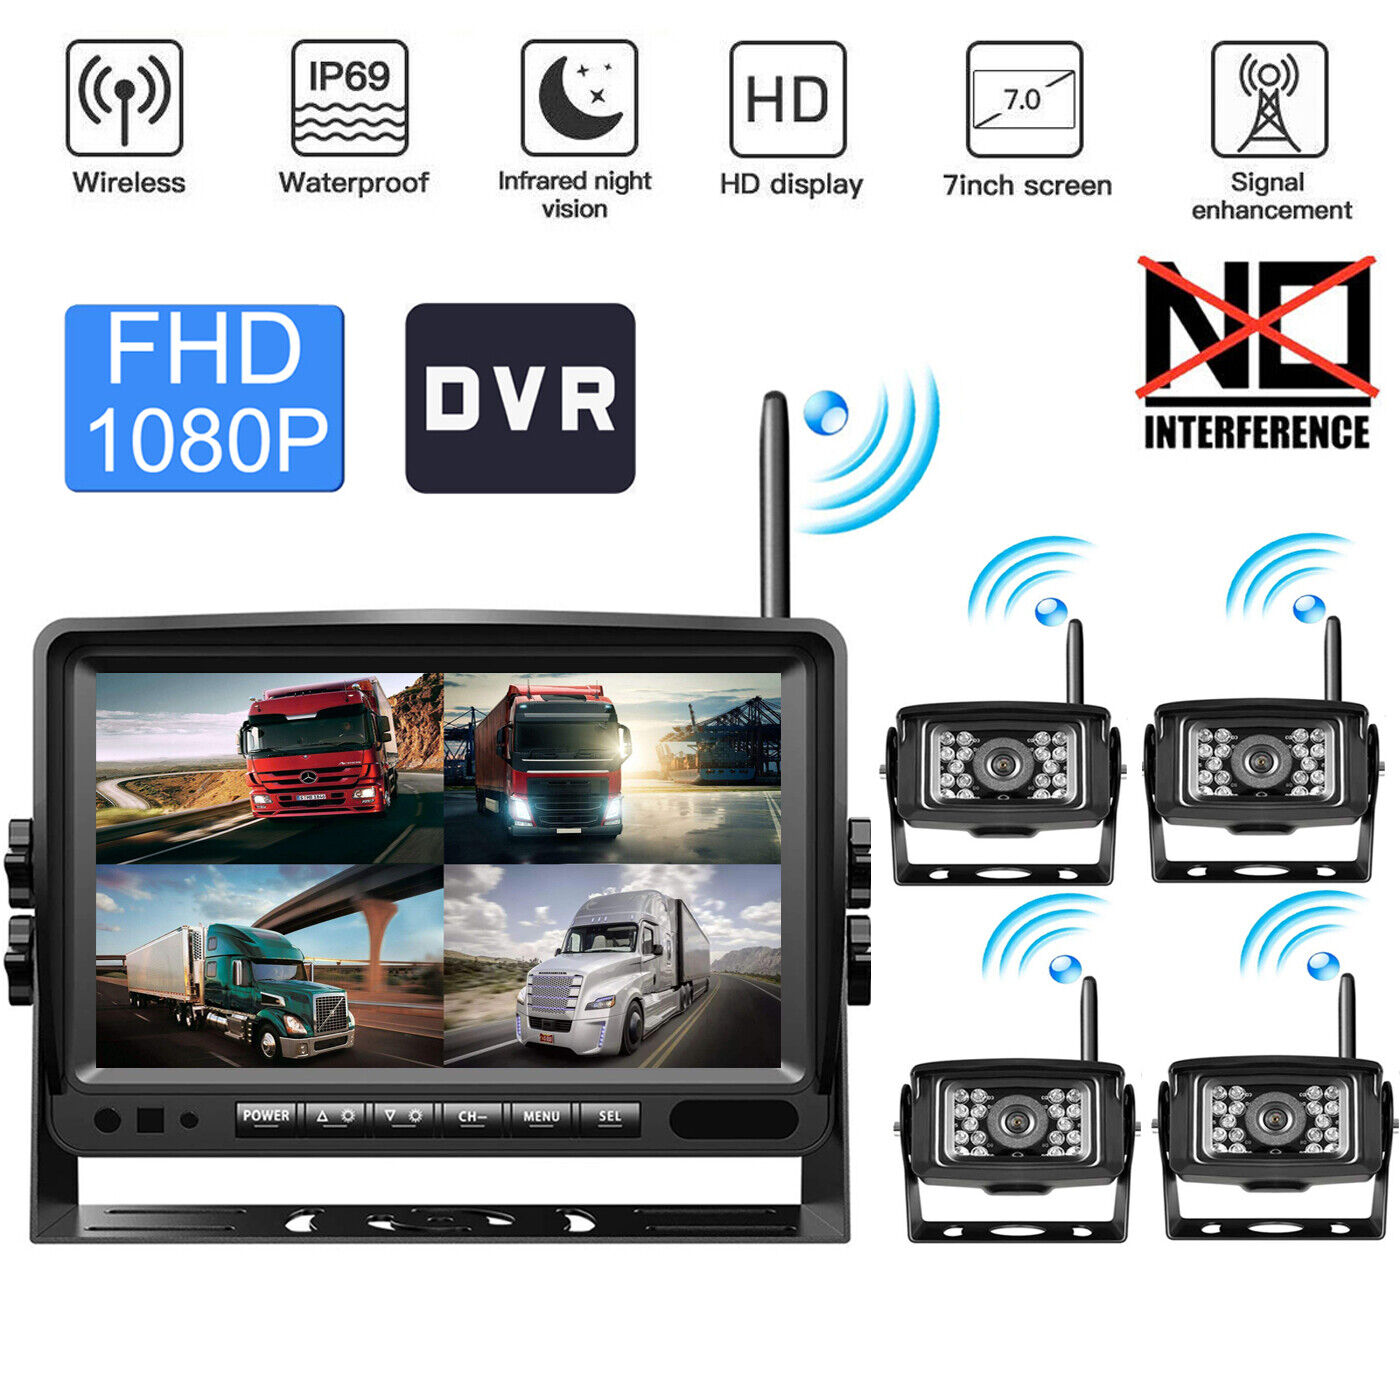 Camper Truck 9 IPS HD Split Monitor Backup Camera System with Video Recording Motorhome 2 Upgraded 1080P Night Vision IP68 Waterproof Rear View Camera Kit for Bus Trailer RV